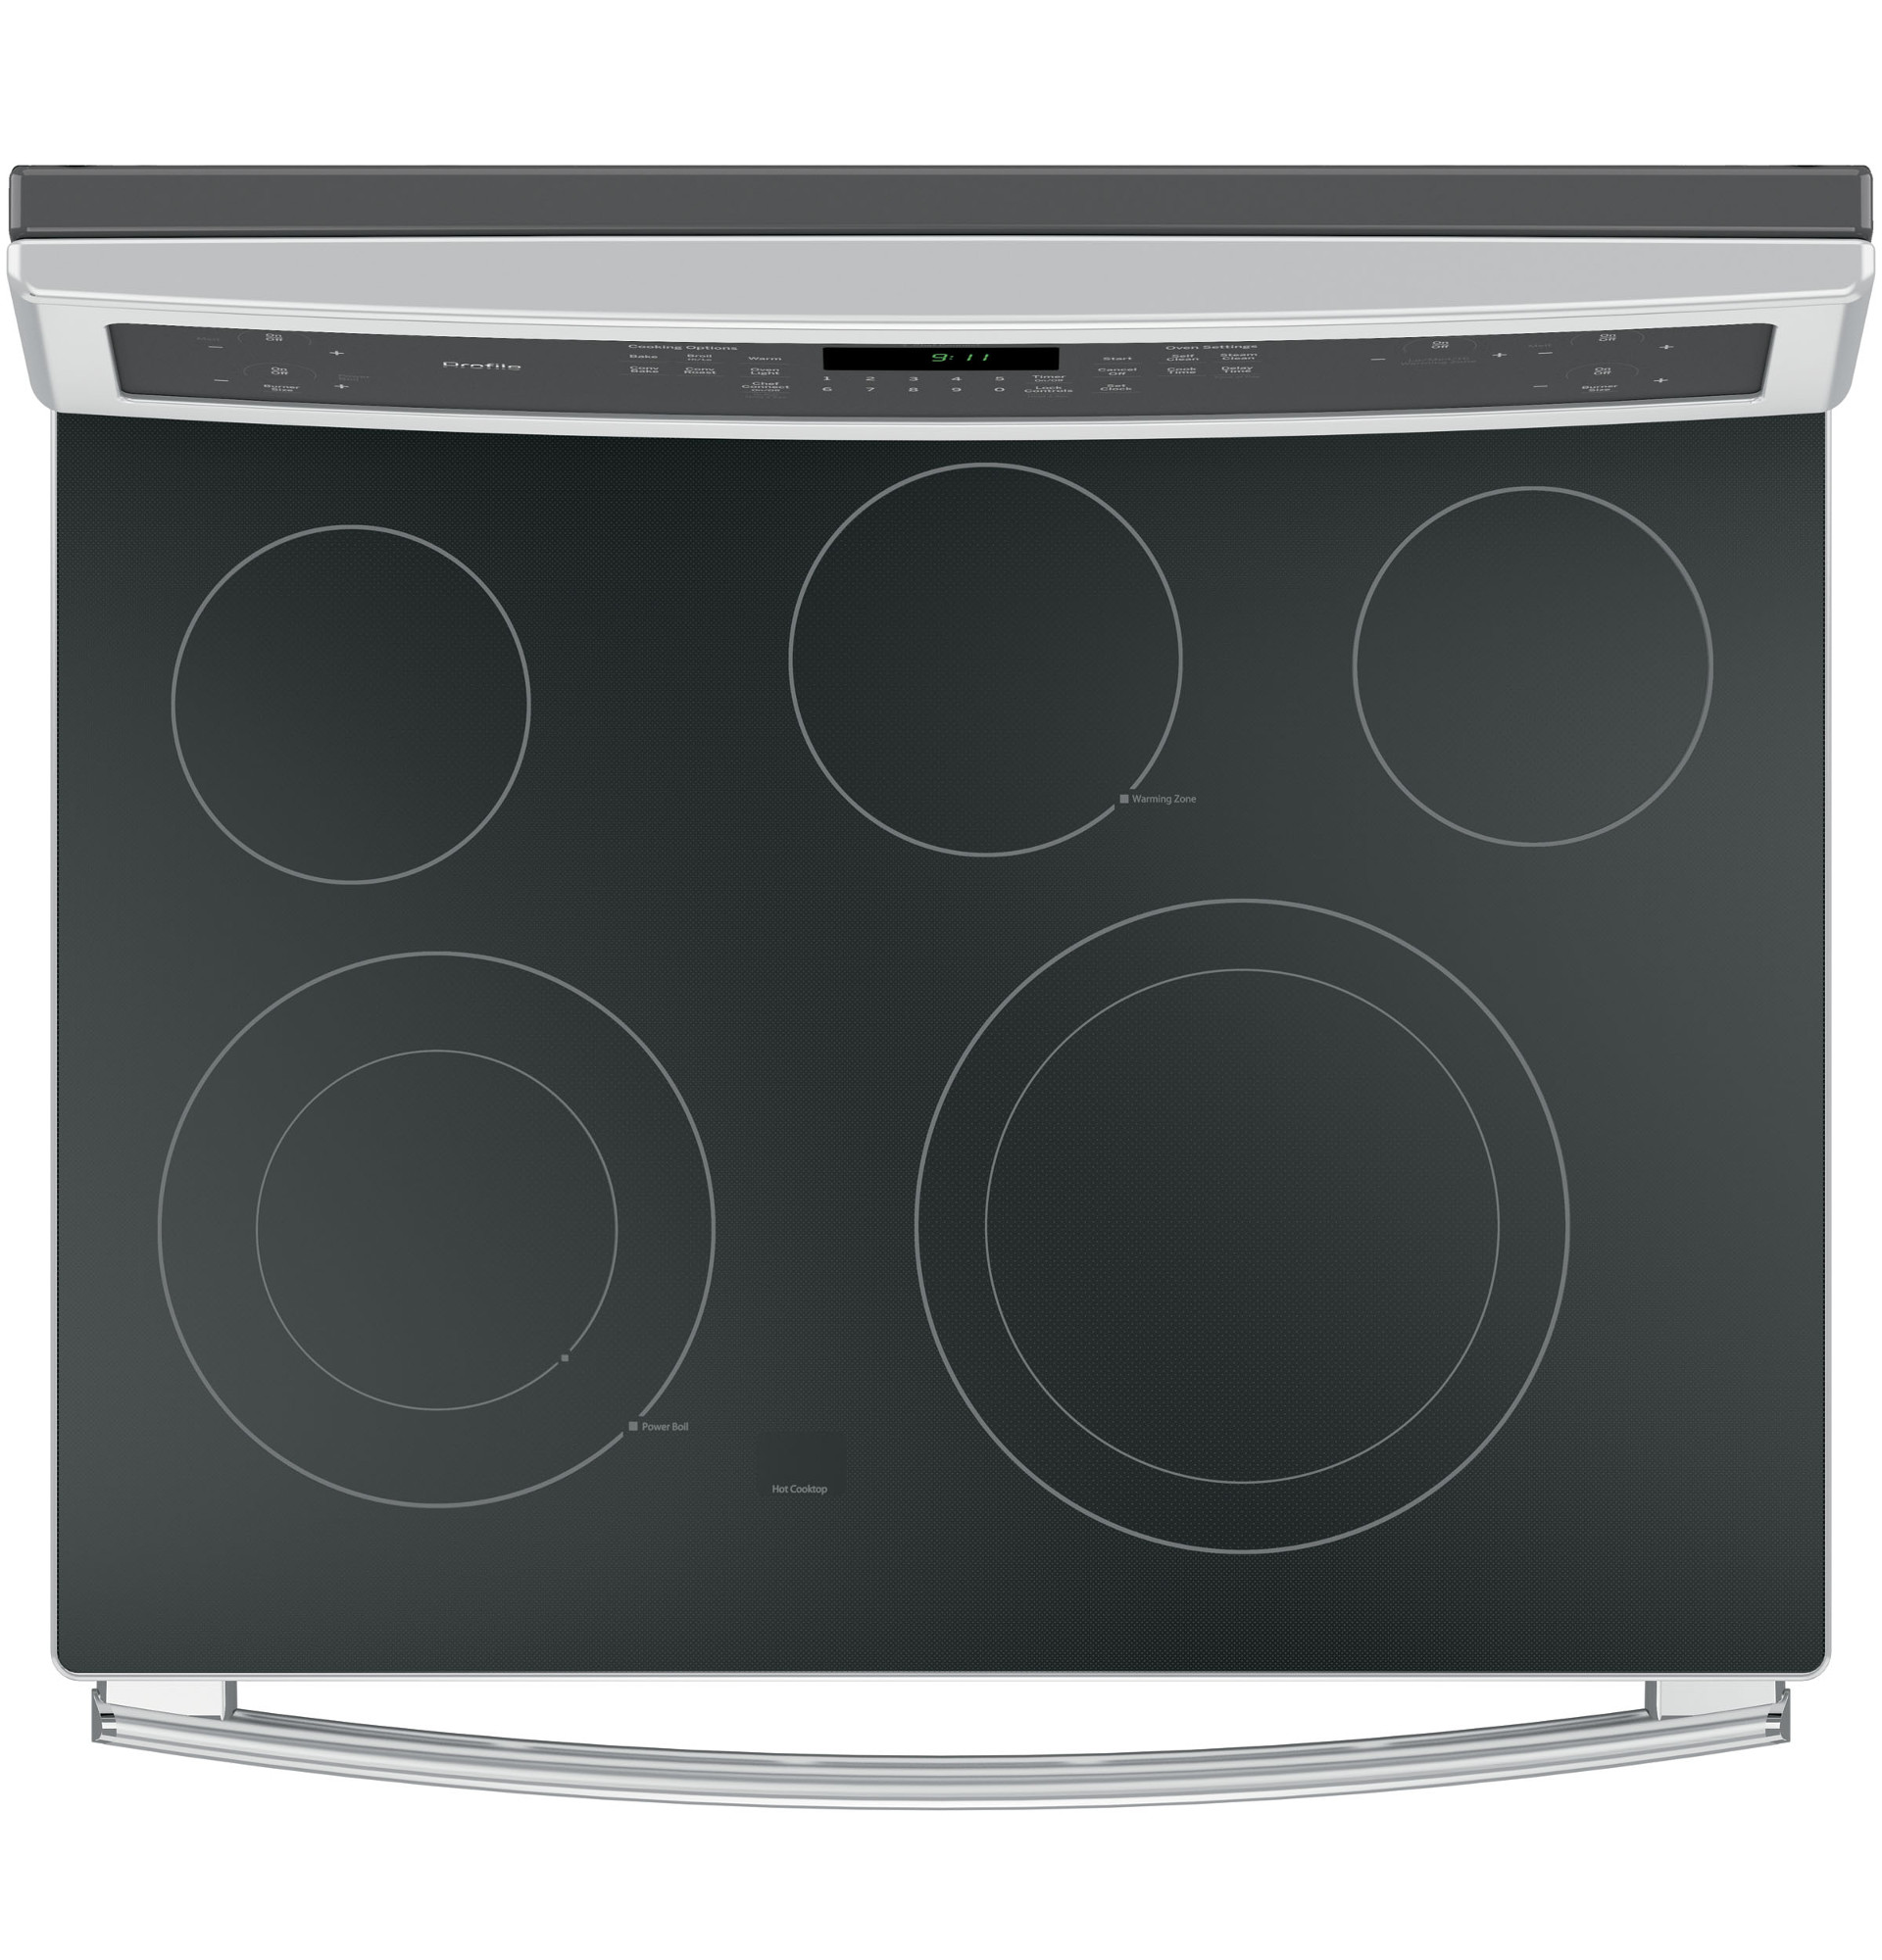 GE Profile PB911SJSS 5.3 cu. ft. Freestanding Electric Convection Range - Stainless Steel